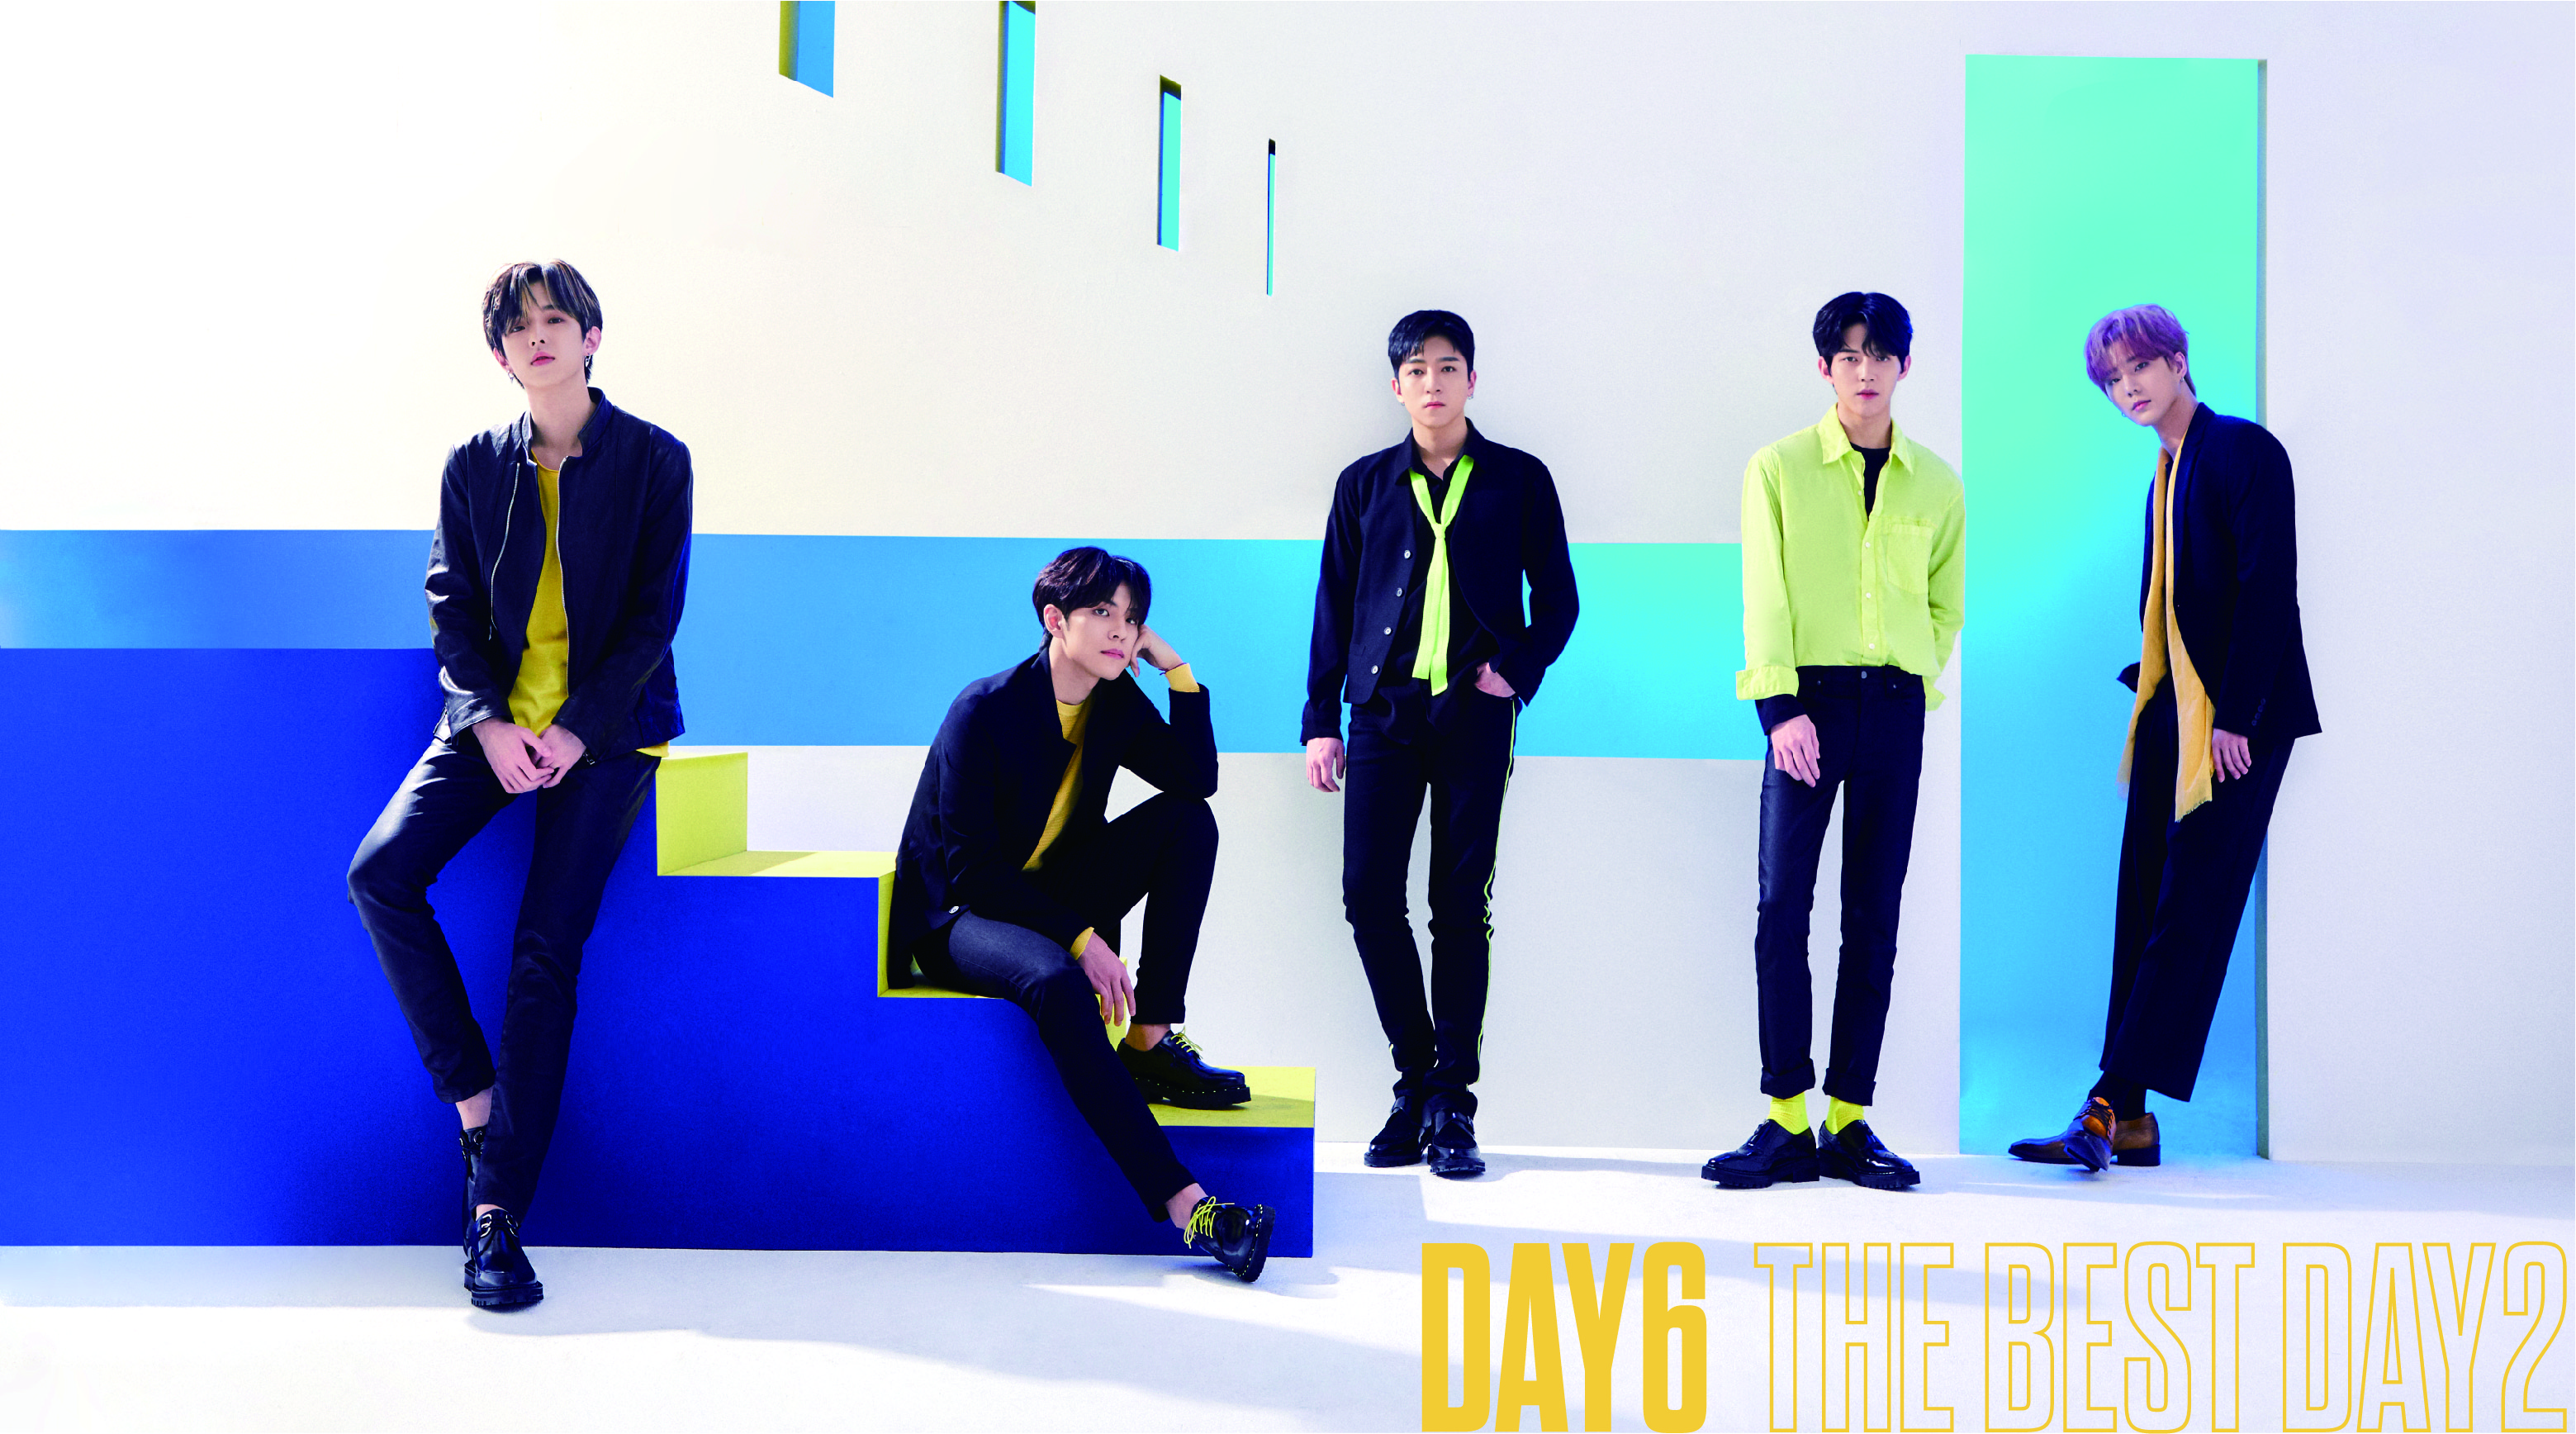 ALBUM「THE BEST DAY2」